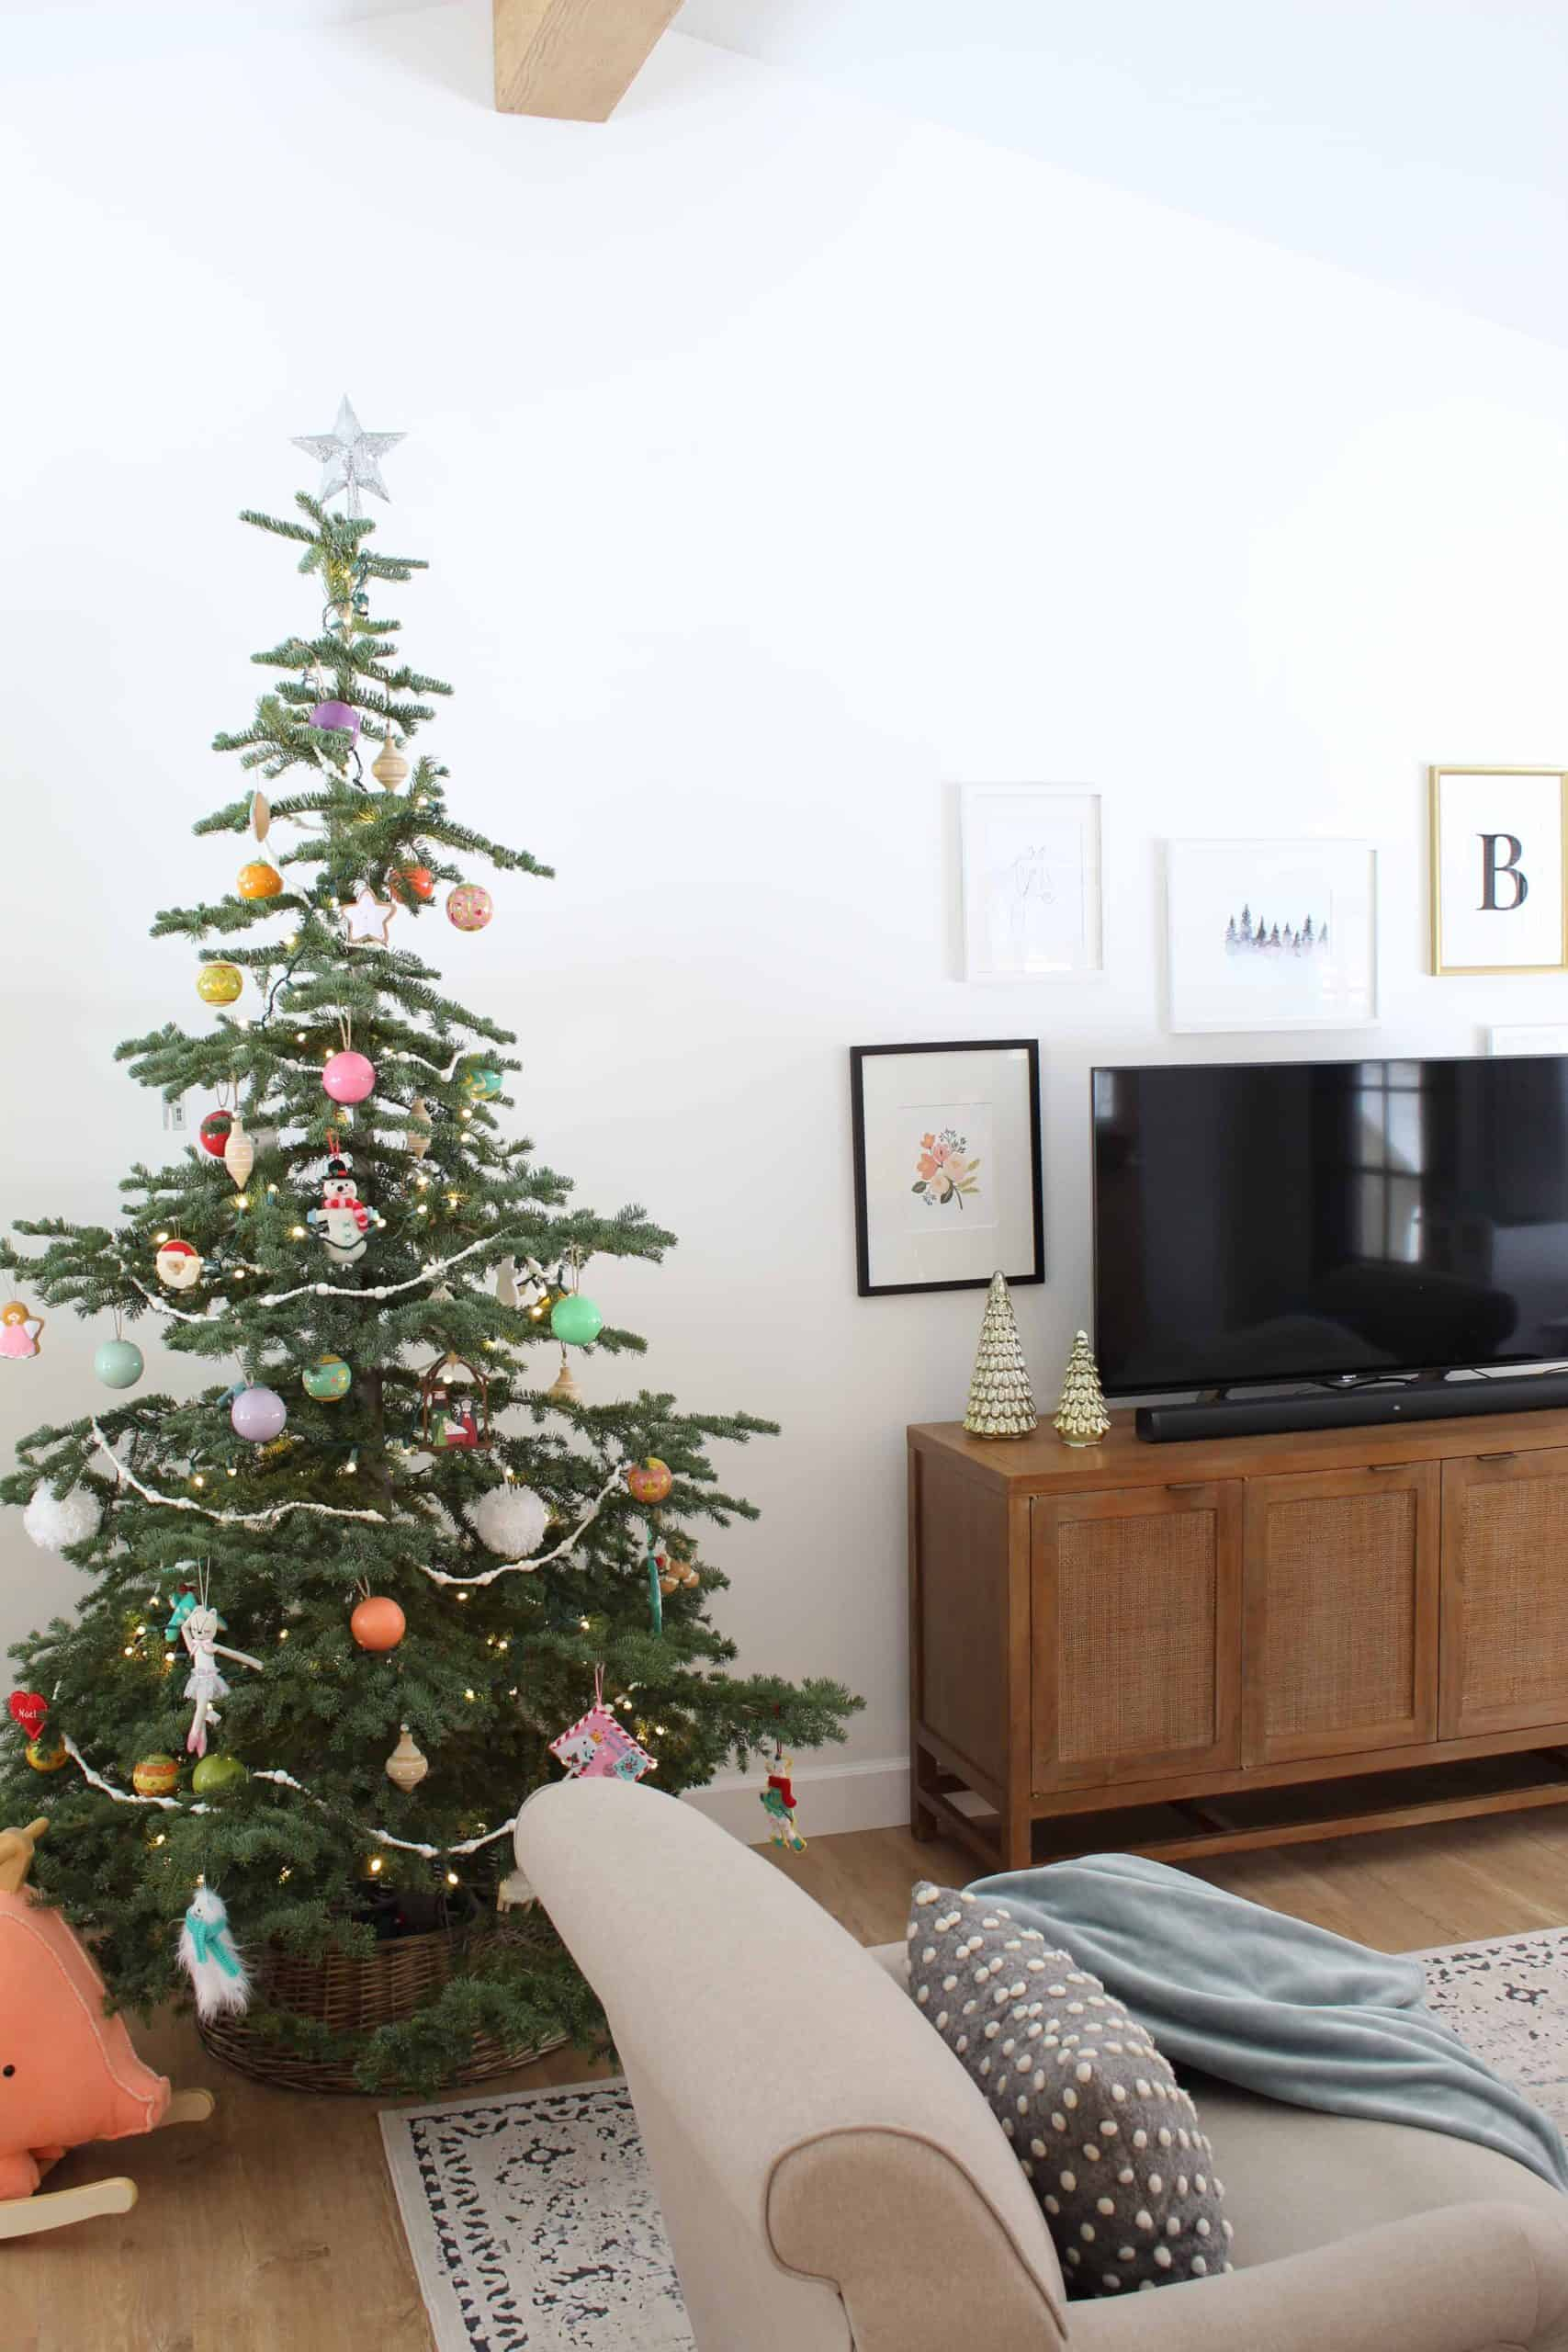 crate and barrel blake gray wash media console, noble fir christmas tree with land of nod ball ornaments